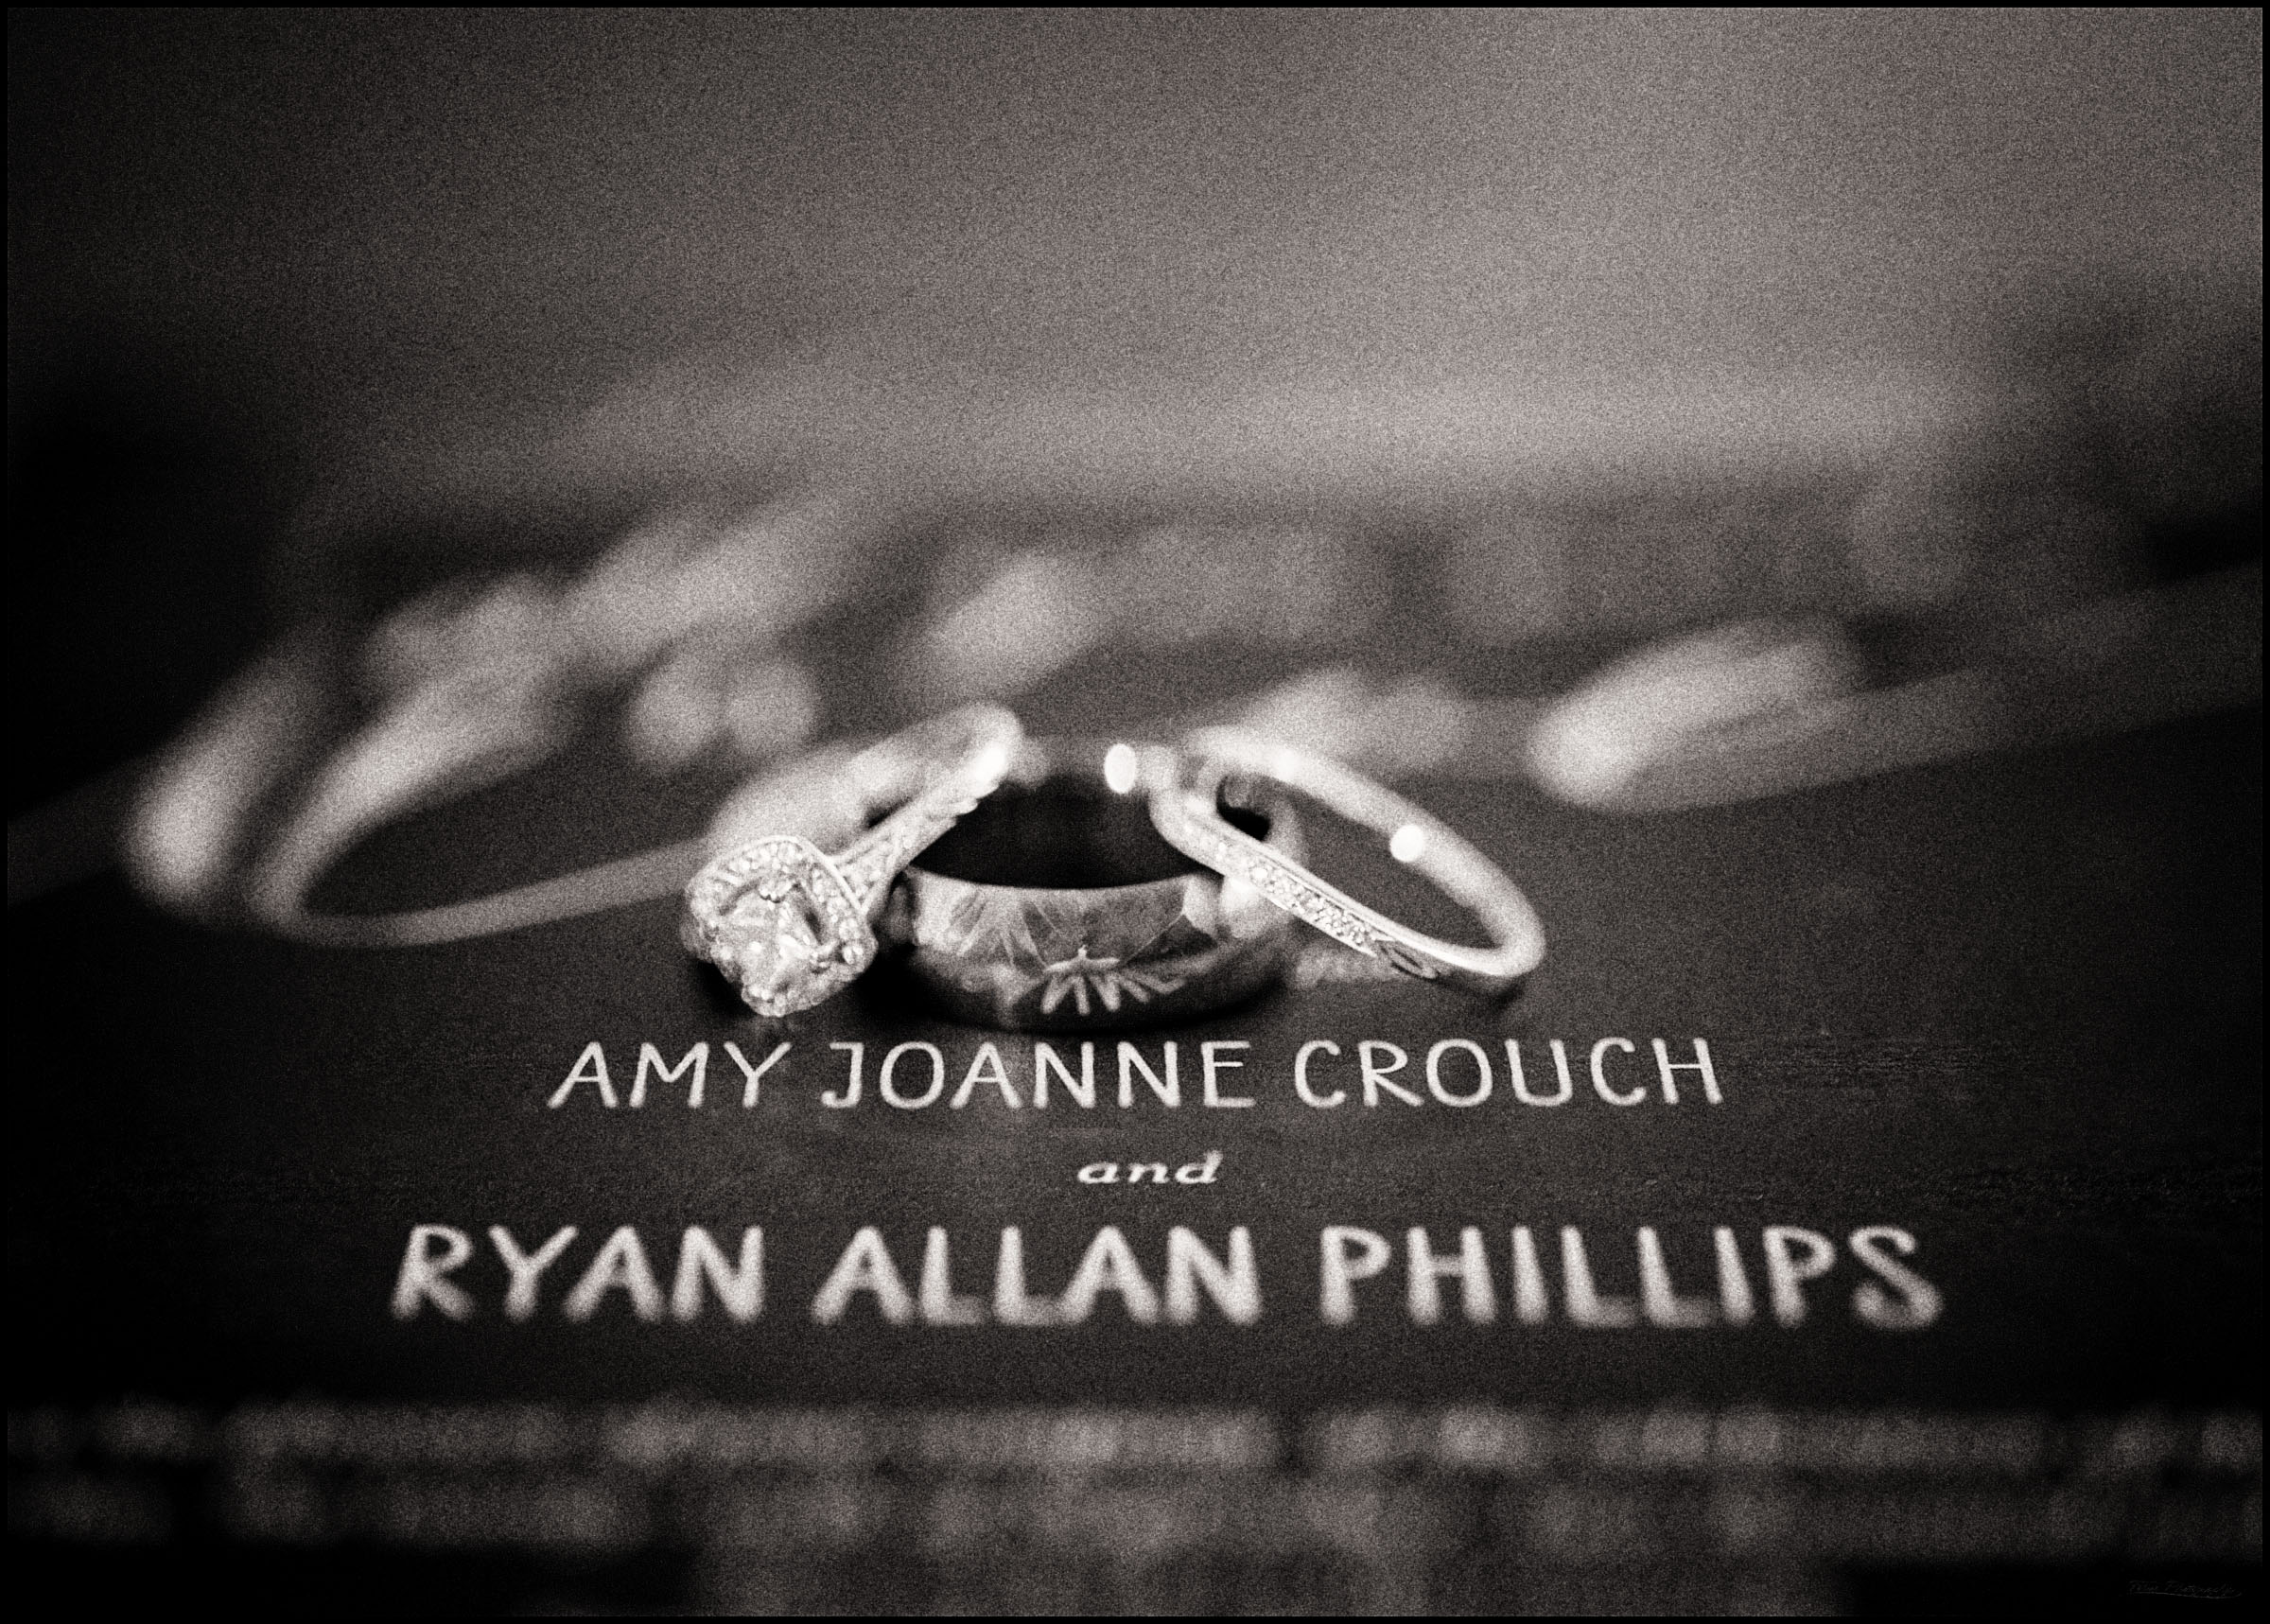 Wedding rings on invitation with reflection of couple